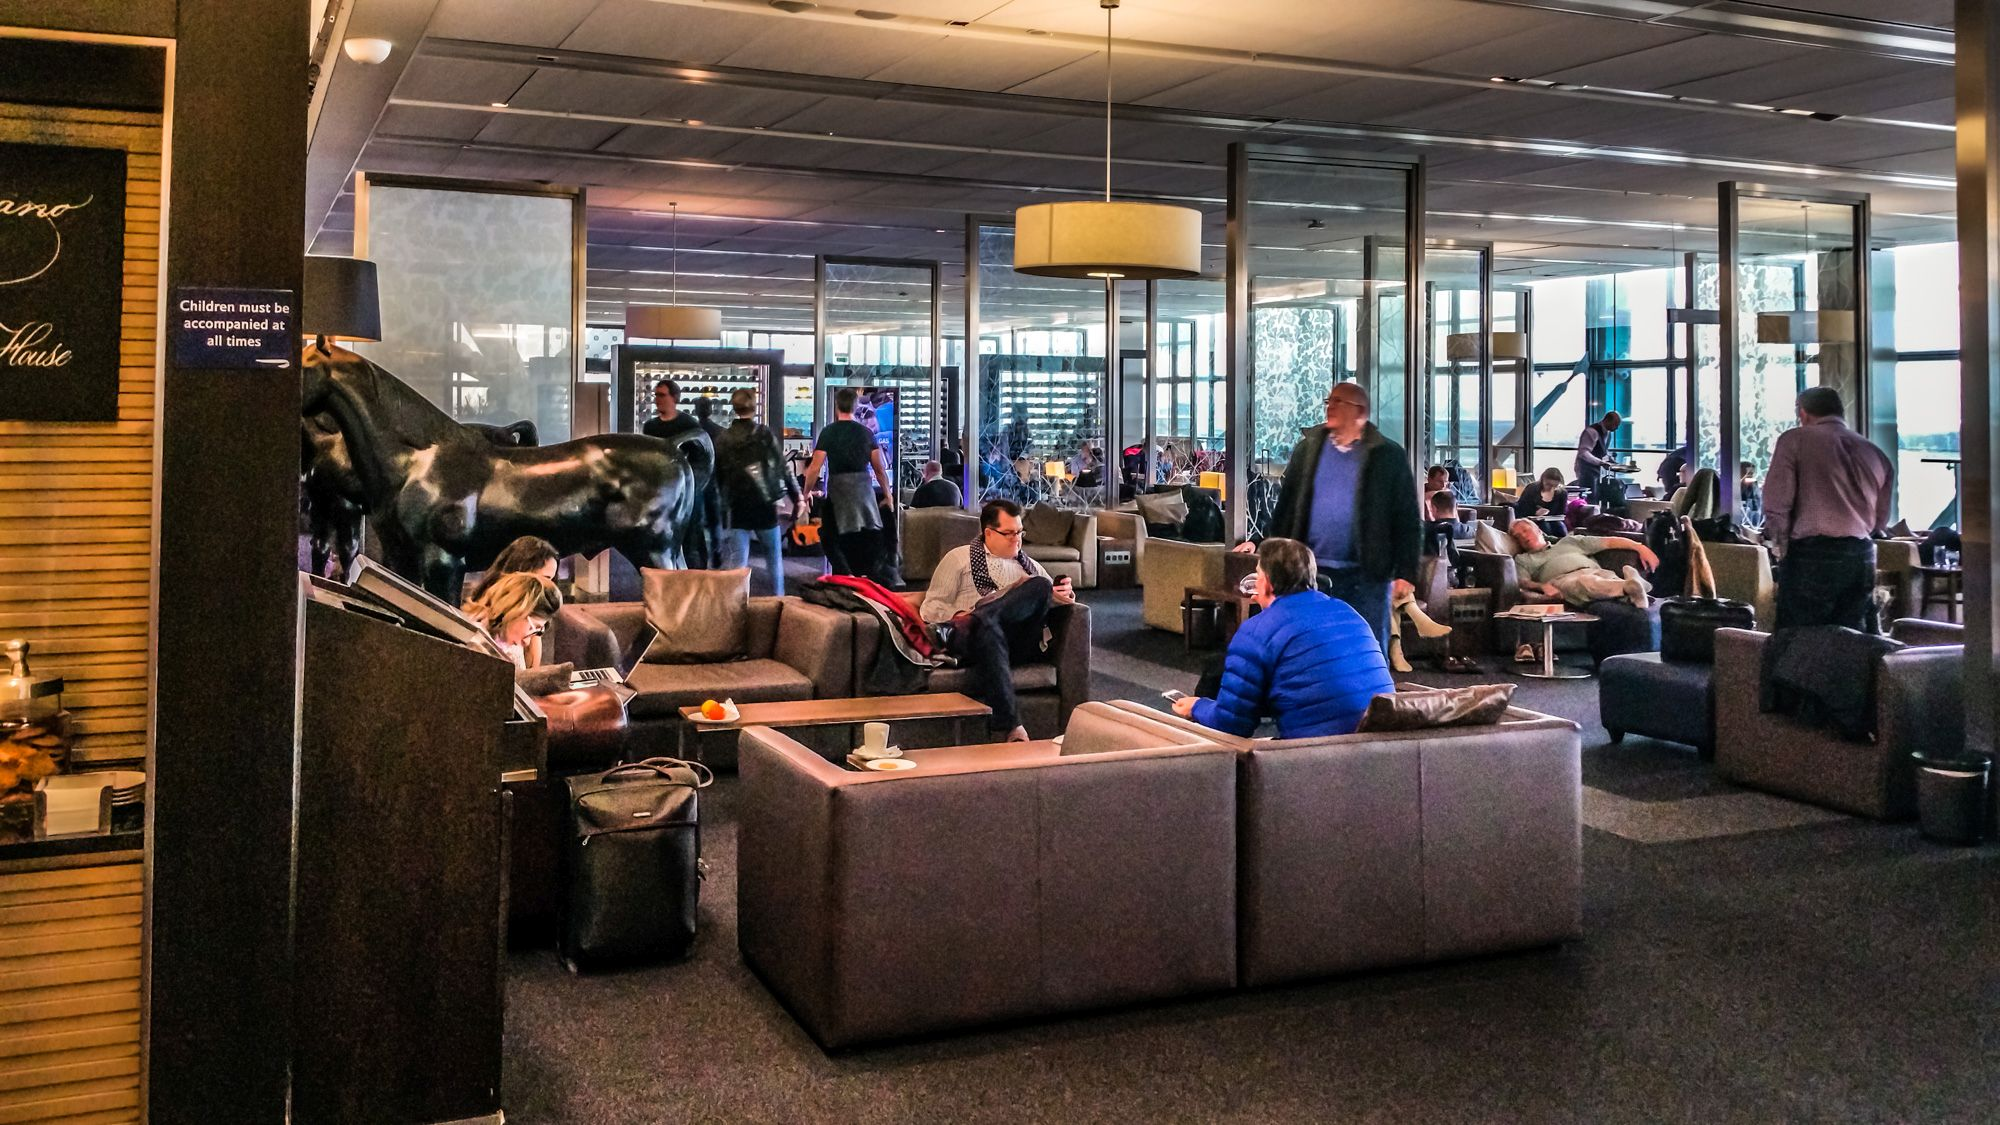 British Airways Galleries First Lounge - South - London Heathrow Terminal 5 - LHR